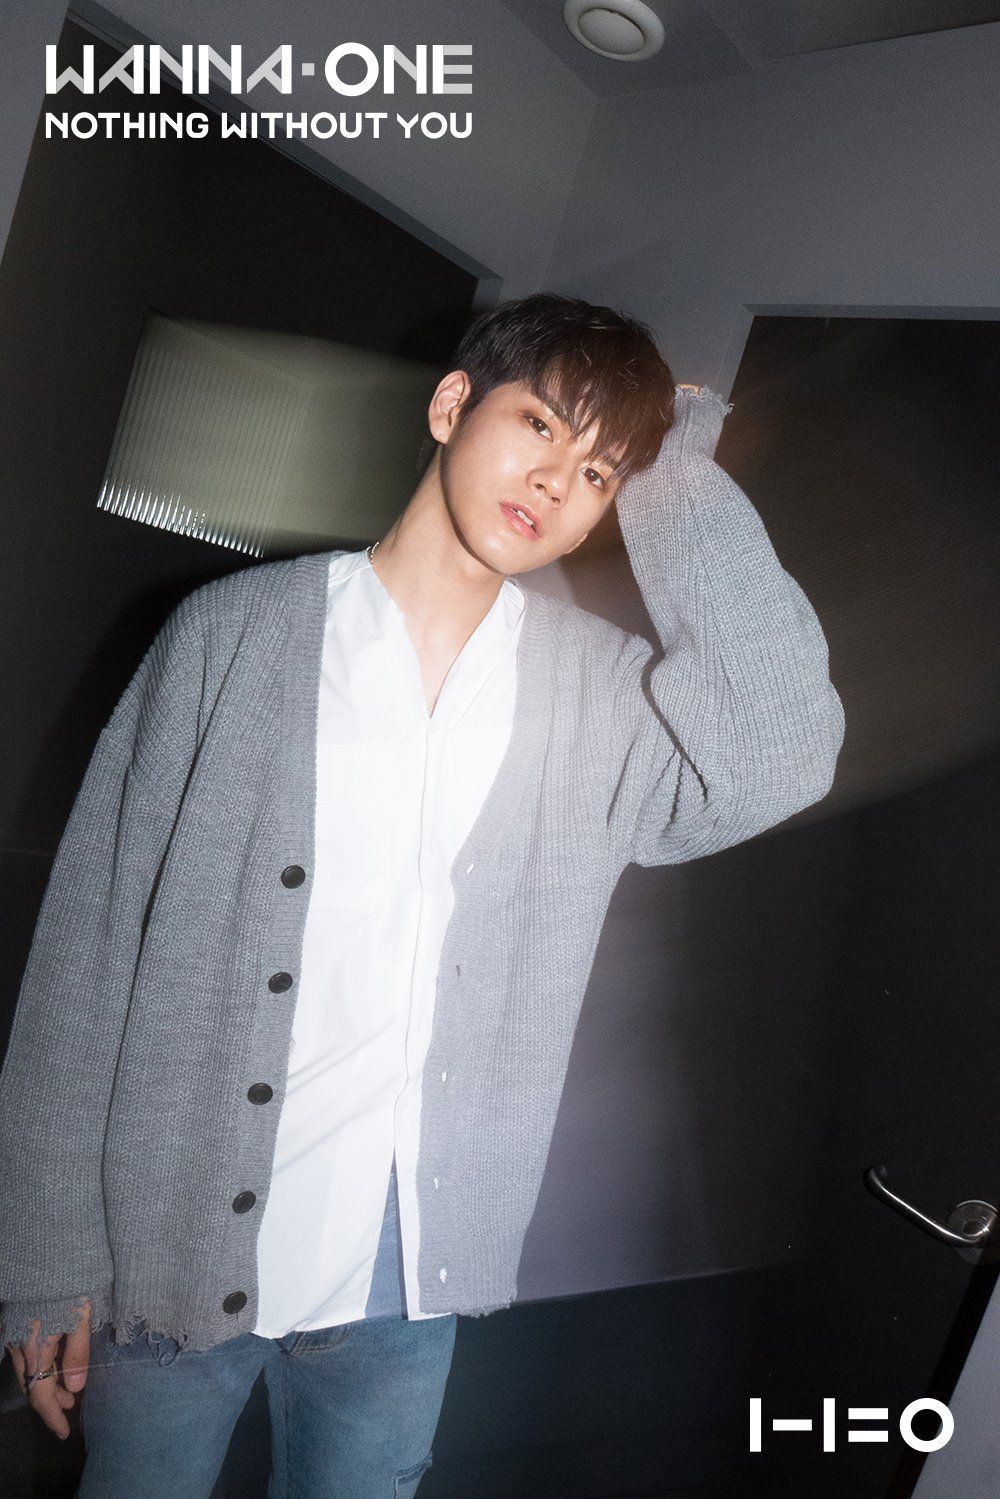 Ong Seongwoo Special Wanna One 1 1 0 Nothing Without You Bonus